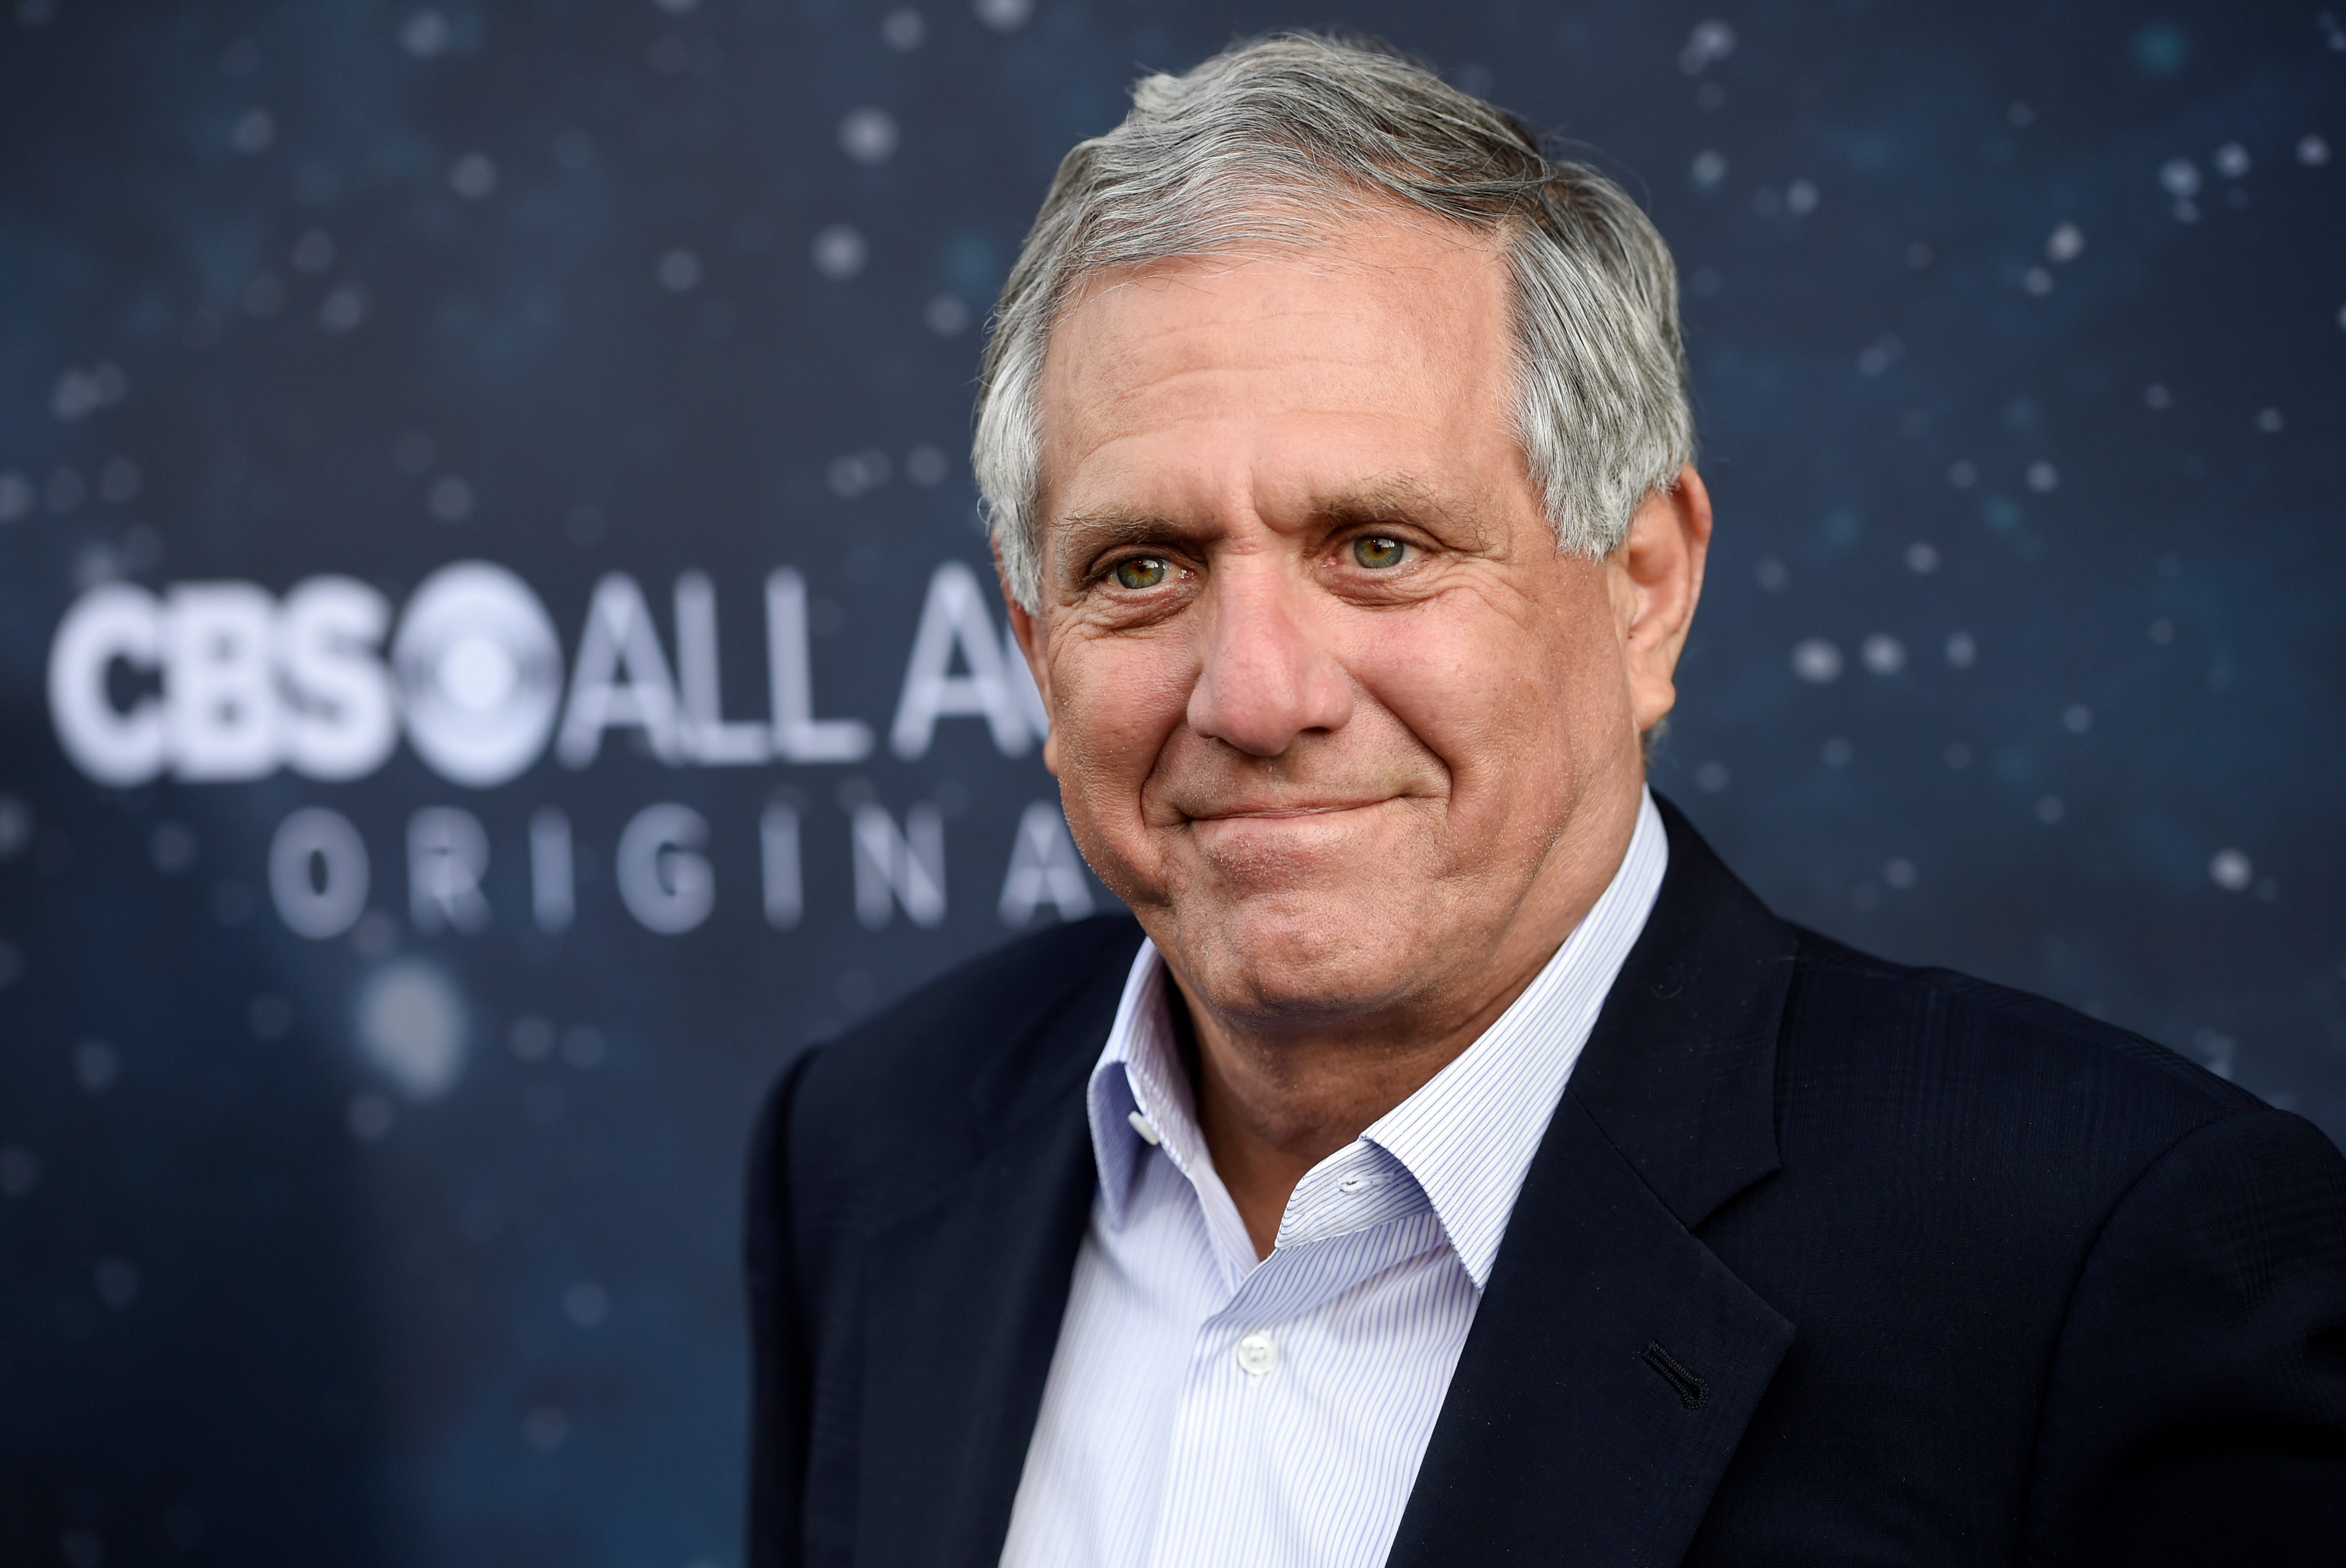 CBS chief Leslie Moonves resigns after damning new sexual misconduct claims